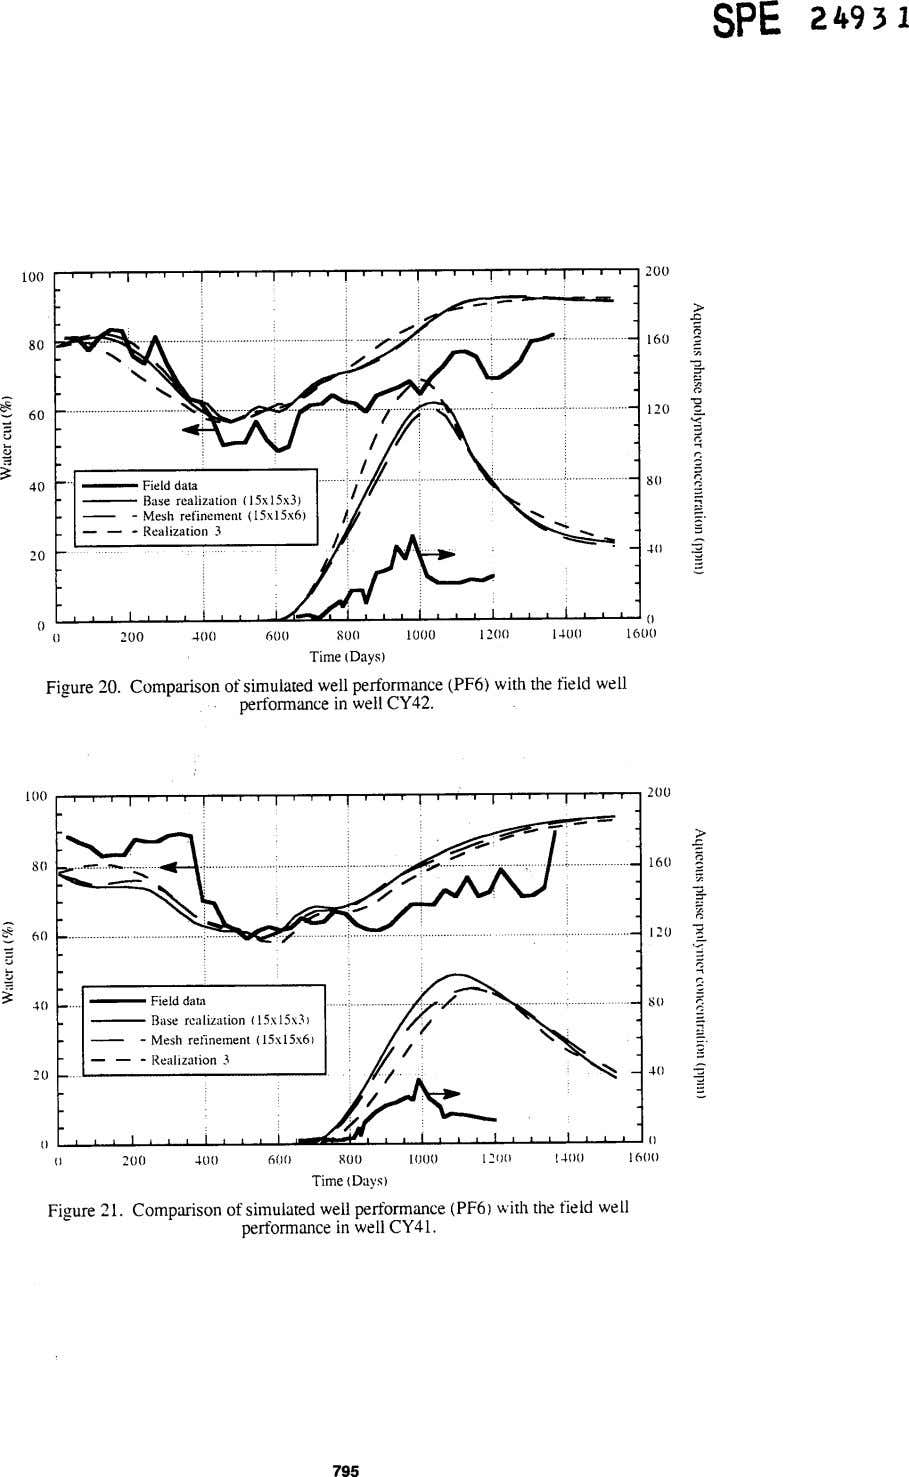 1200 1100 0 200 JOO 600 SO0 1000 Time (Days) Figure 20. Comparison of simulated